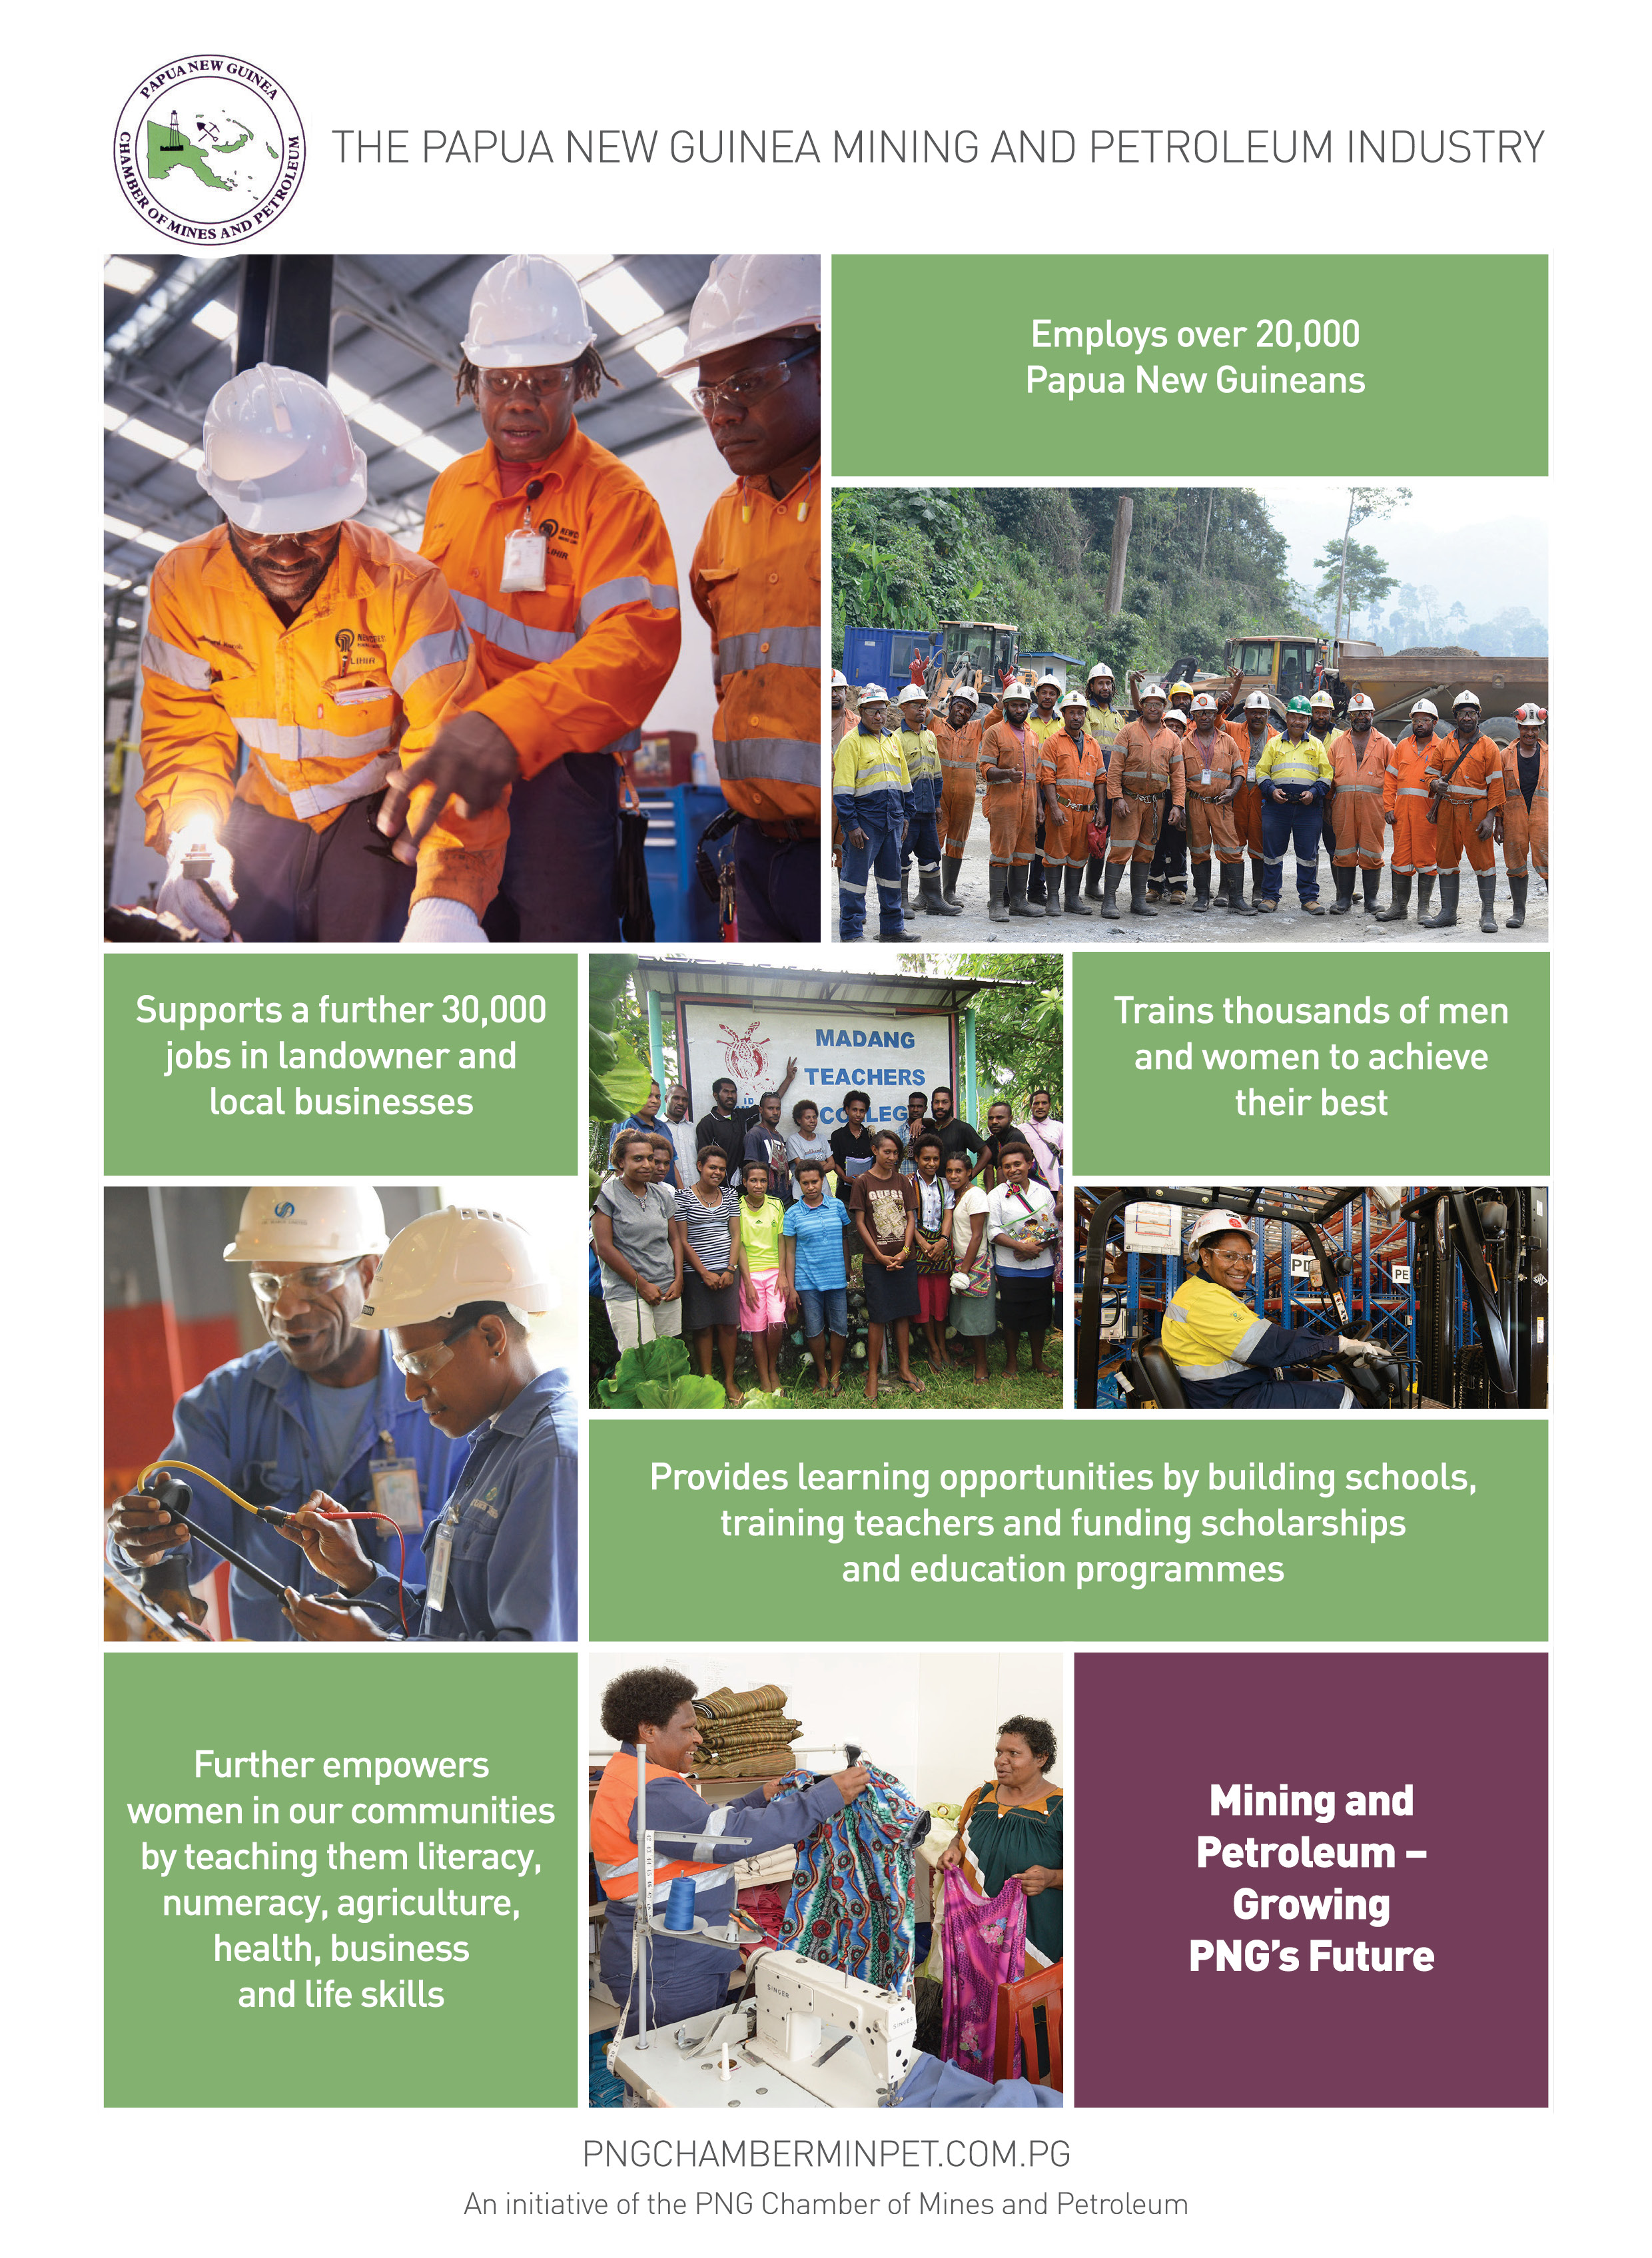 PNG Resources Q1 2019 – Page 41